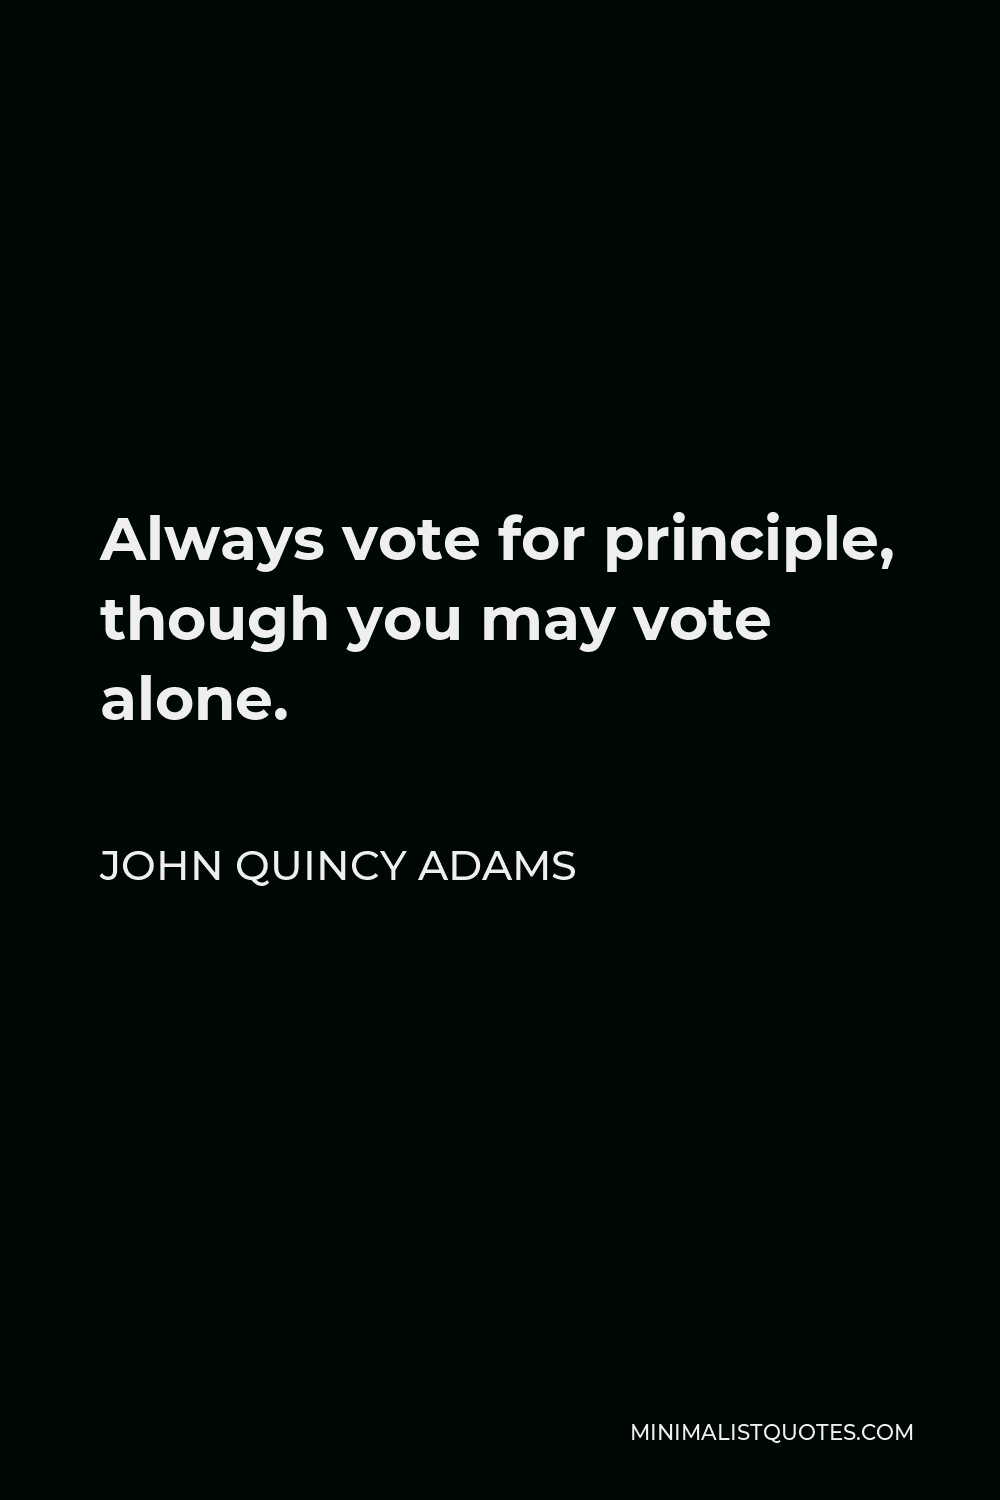 John Quincy Adams Quote - Always vote for principle, though you may vote alone.